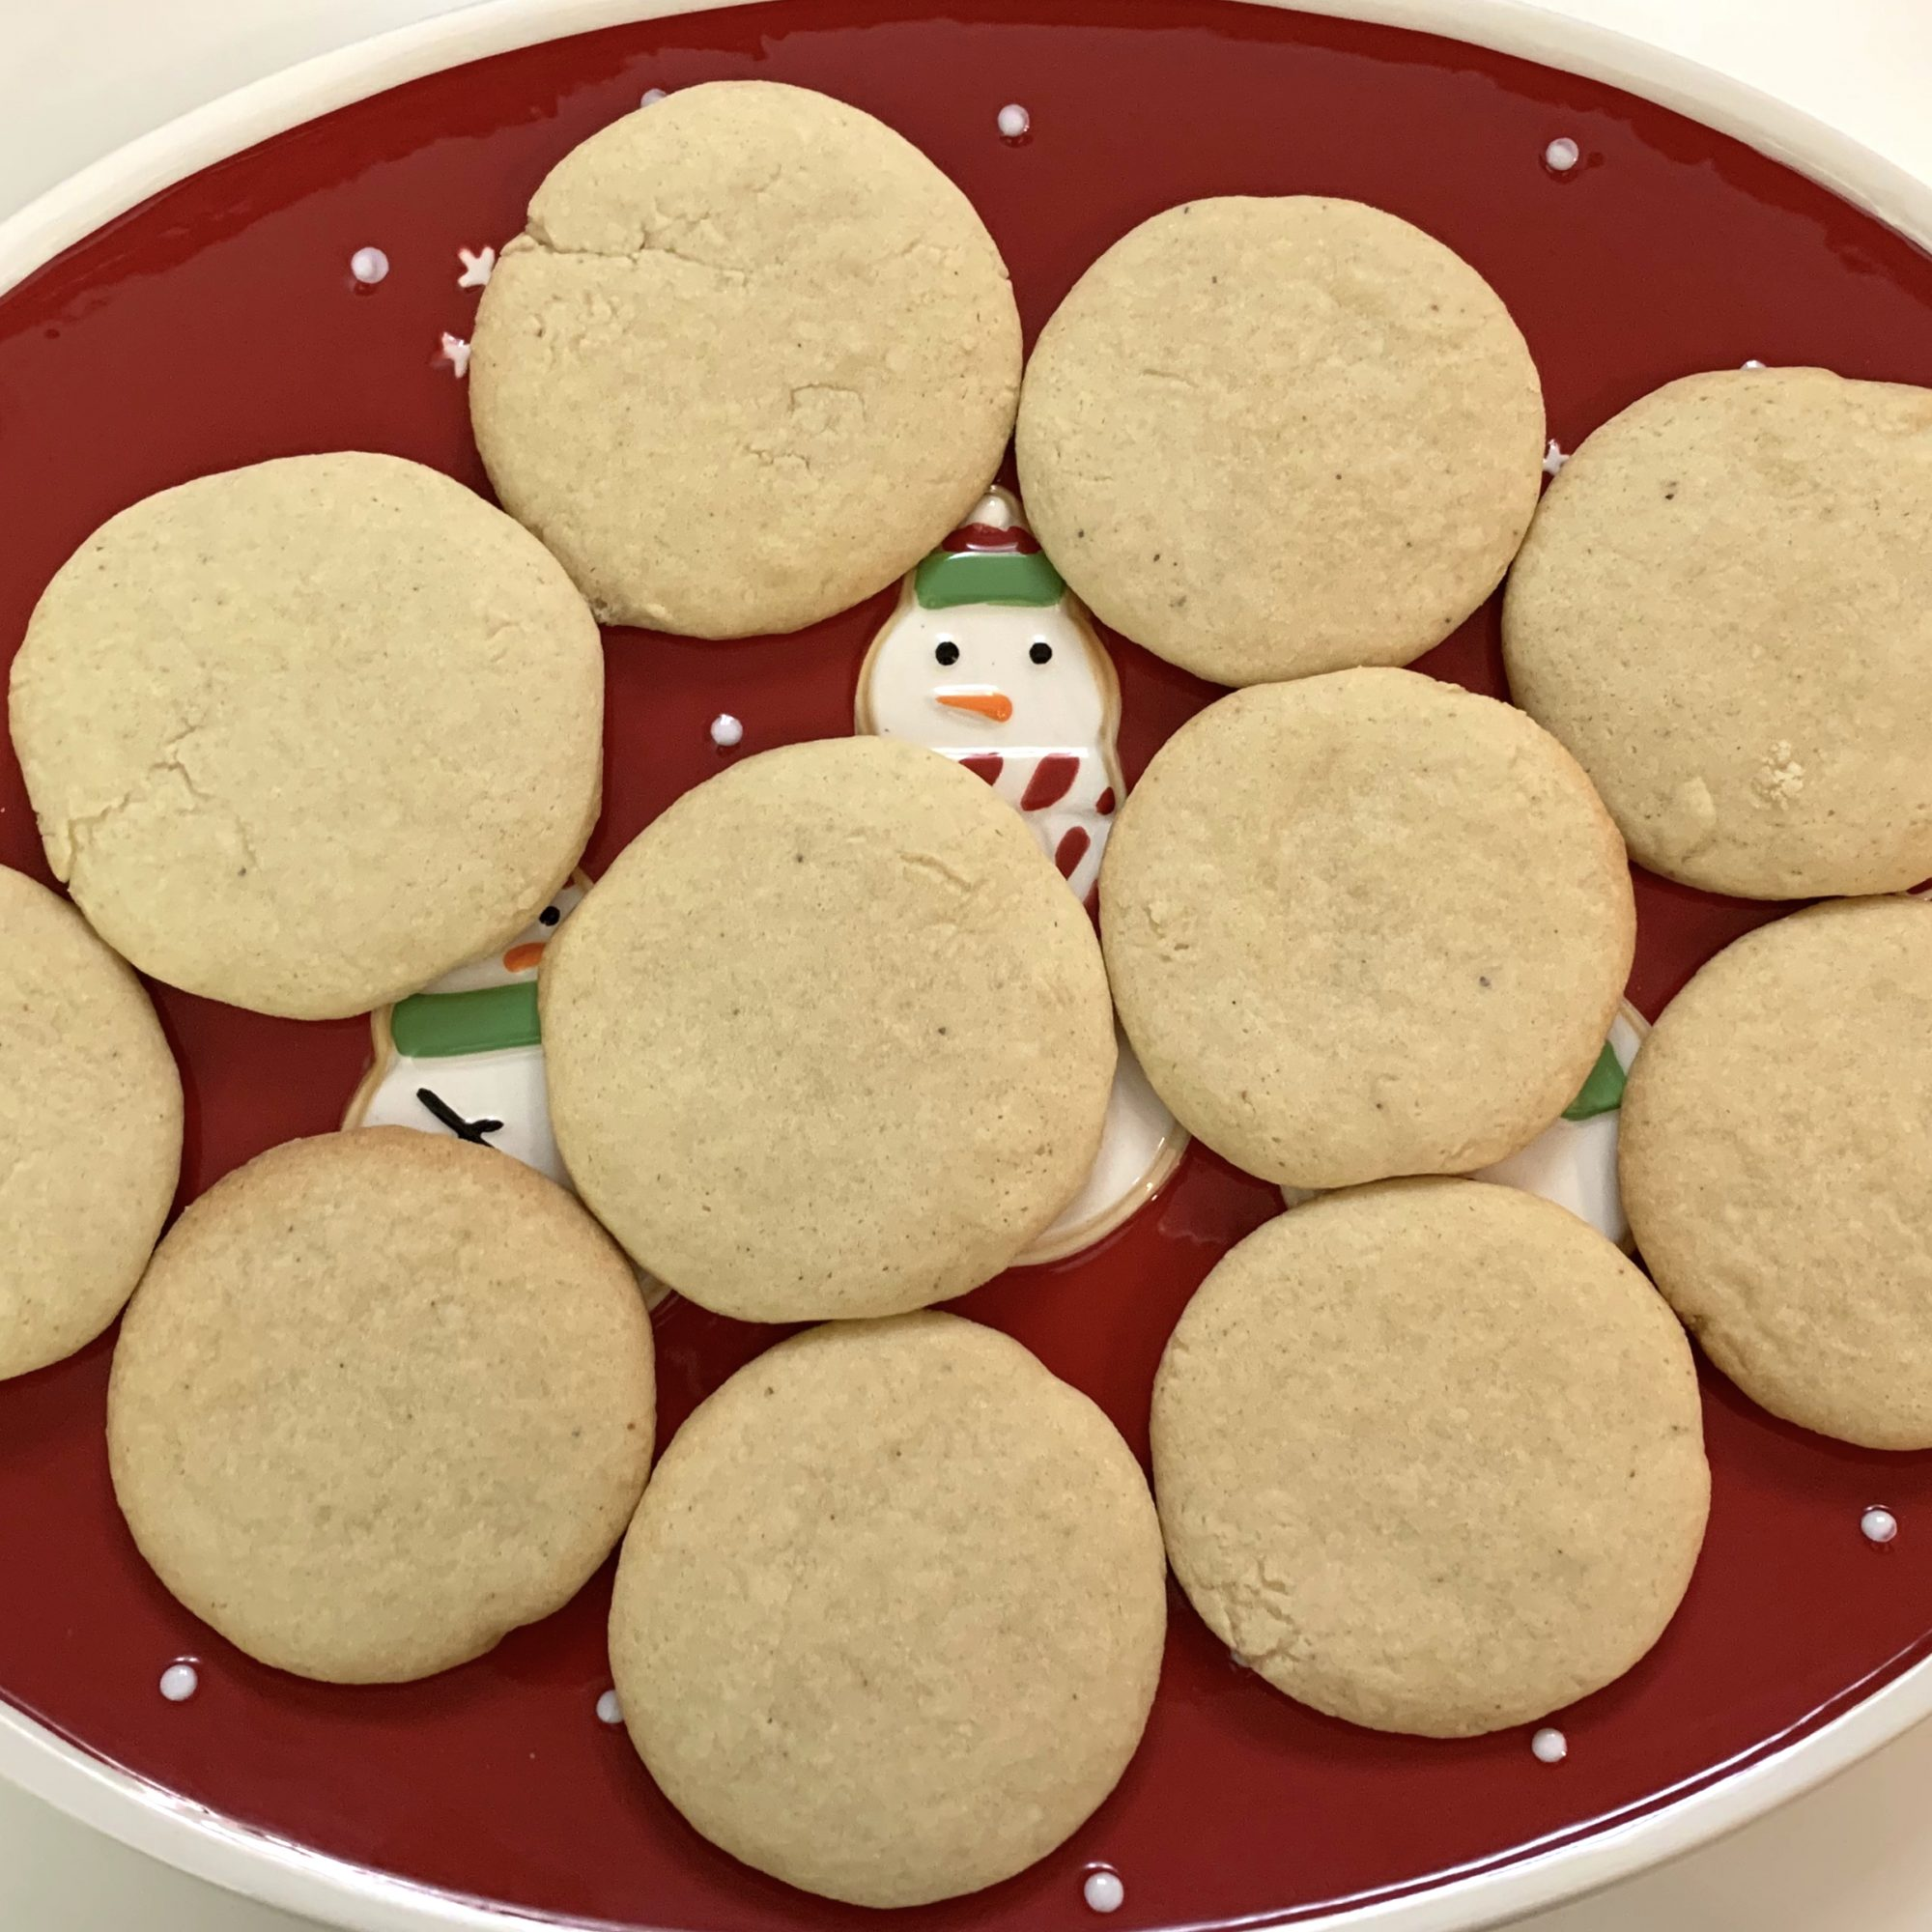 tea cakes on a red snowman plate